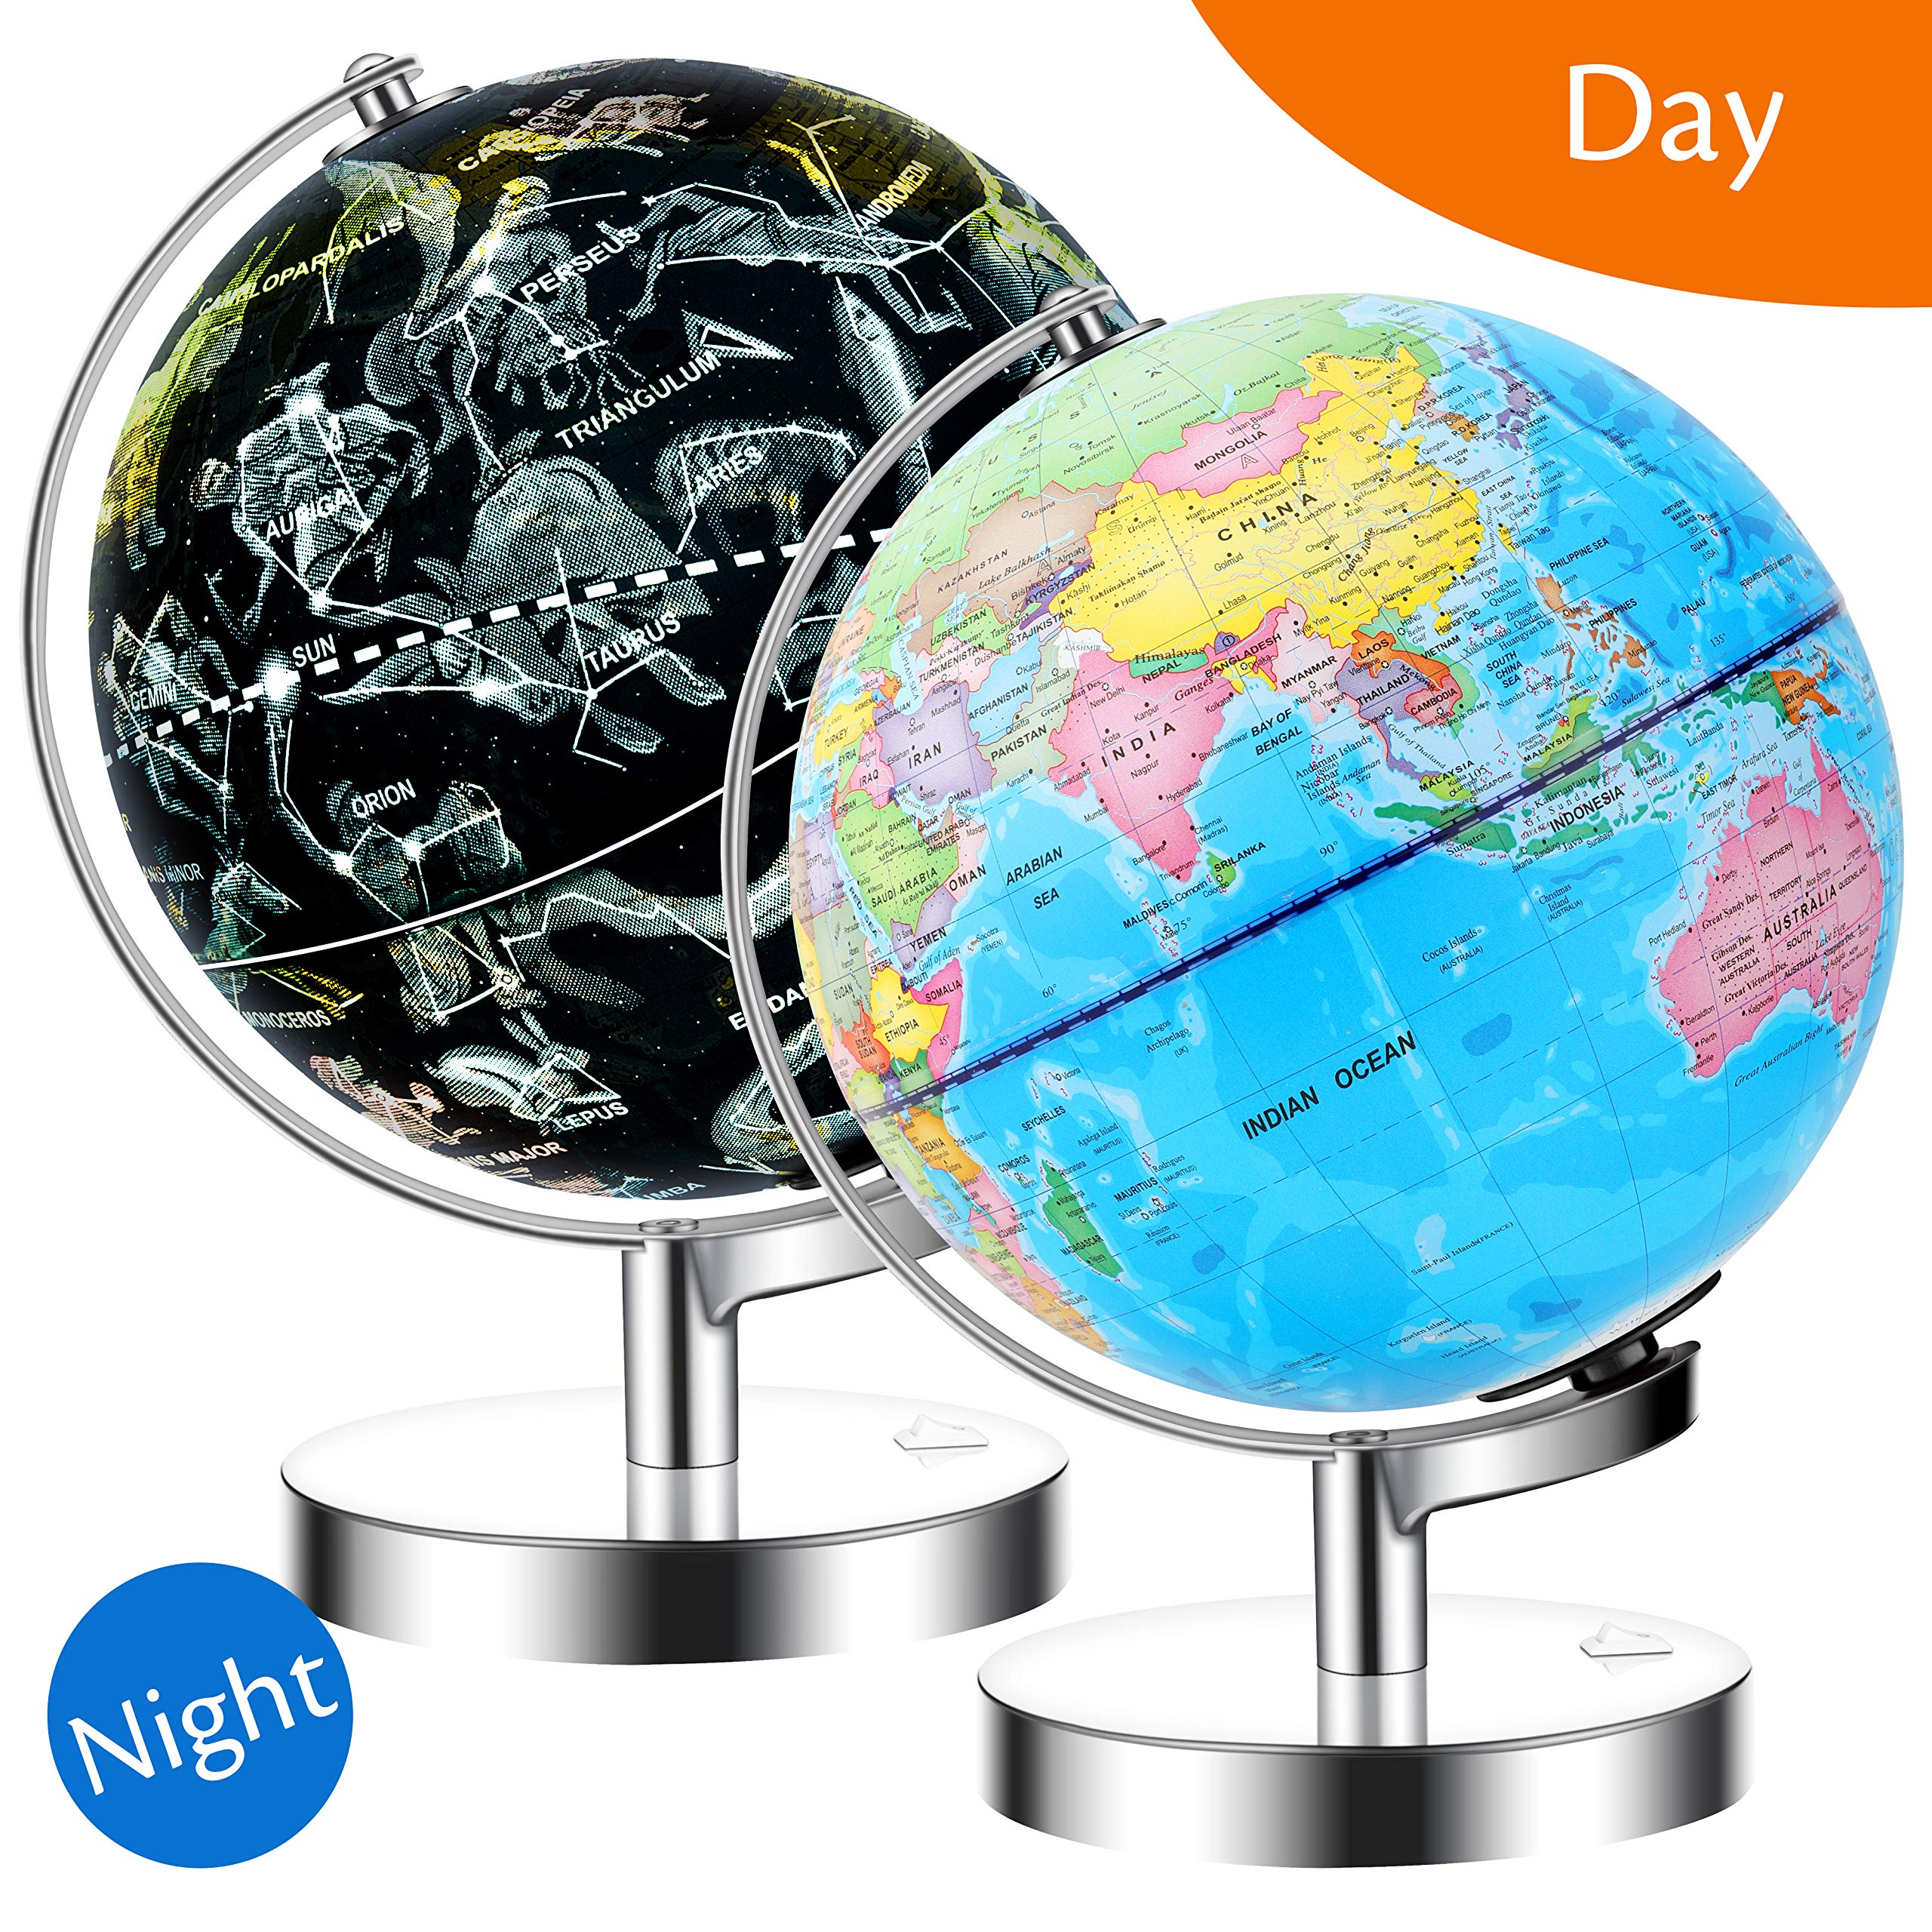 JARBO 8''/20cm Illuminated Constellation World Globe for Kids with Stand, Built-in LED Light Illuminates for Night View of Constellation, Learning Gift Detailed Globe for Kids, Powered by Battery